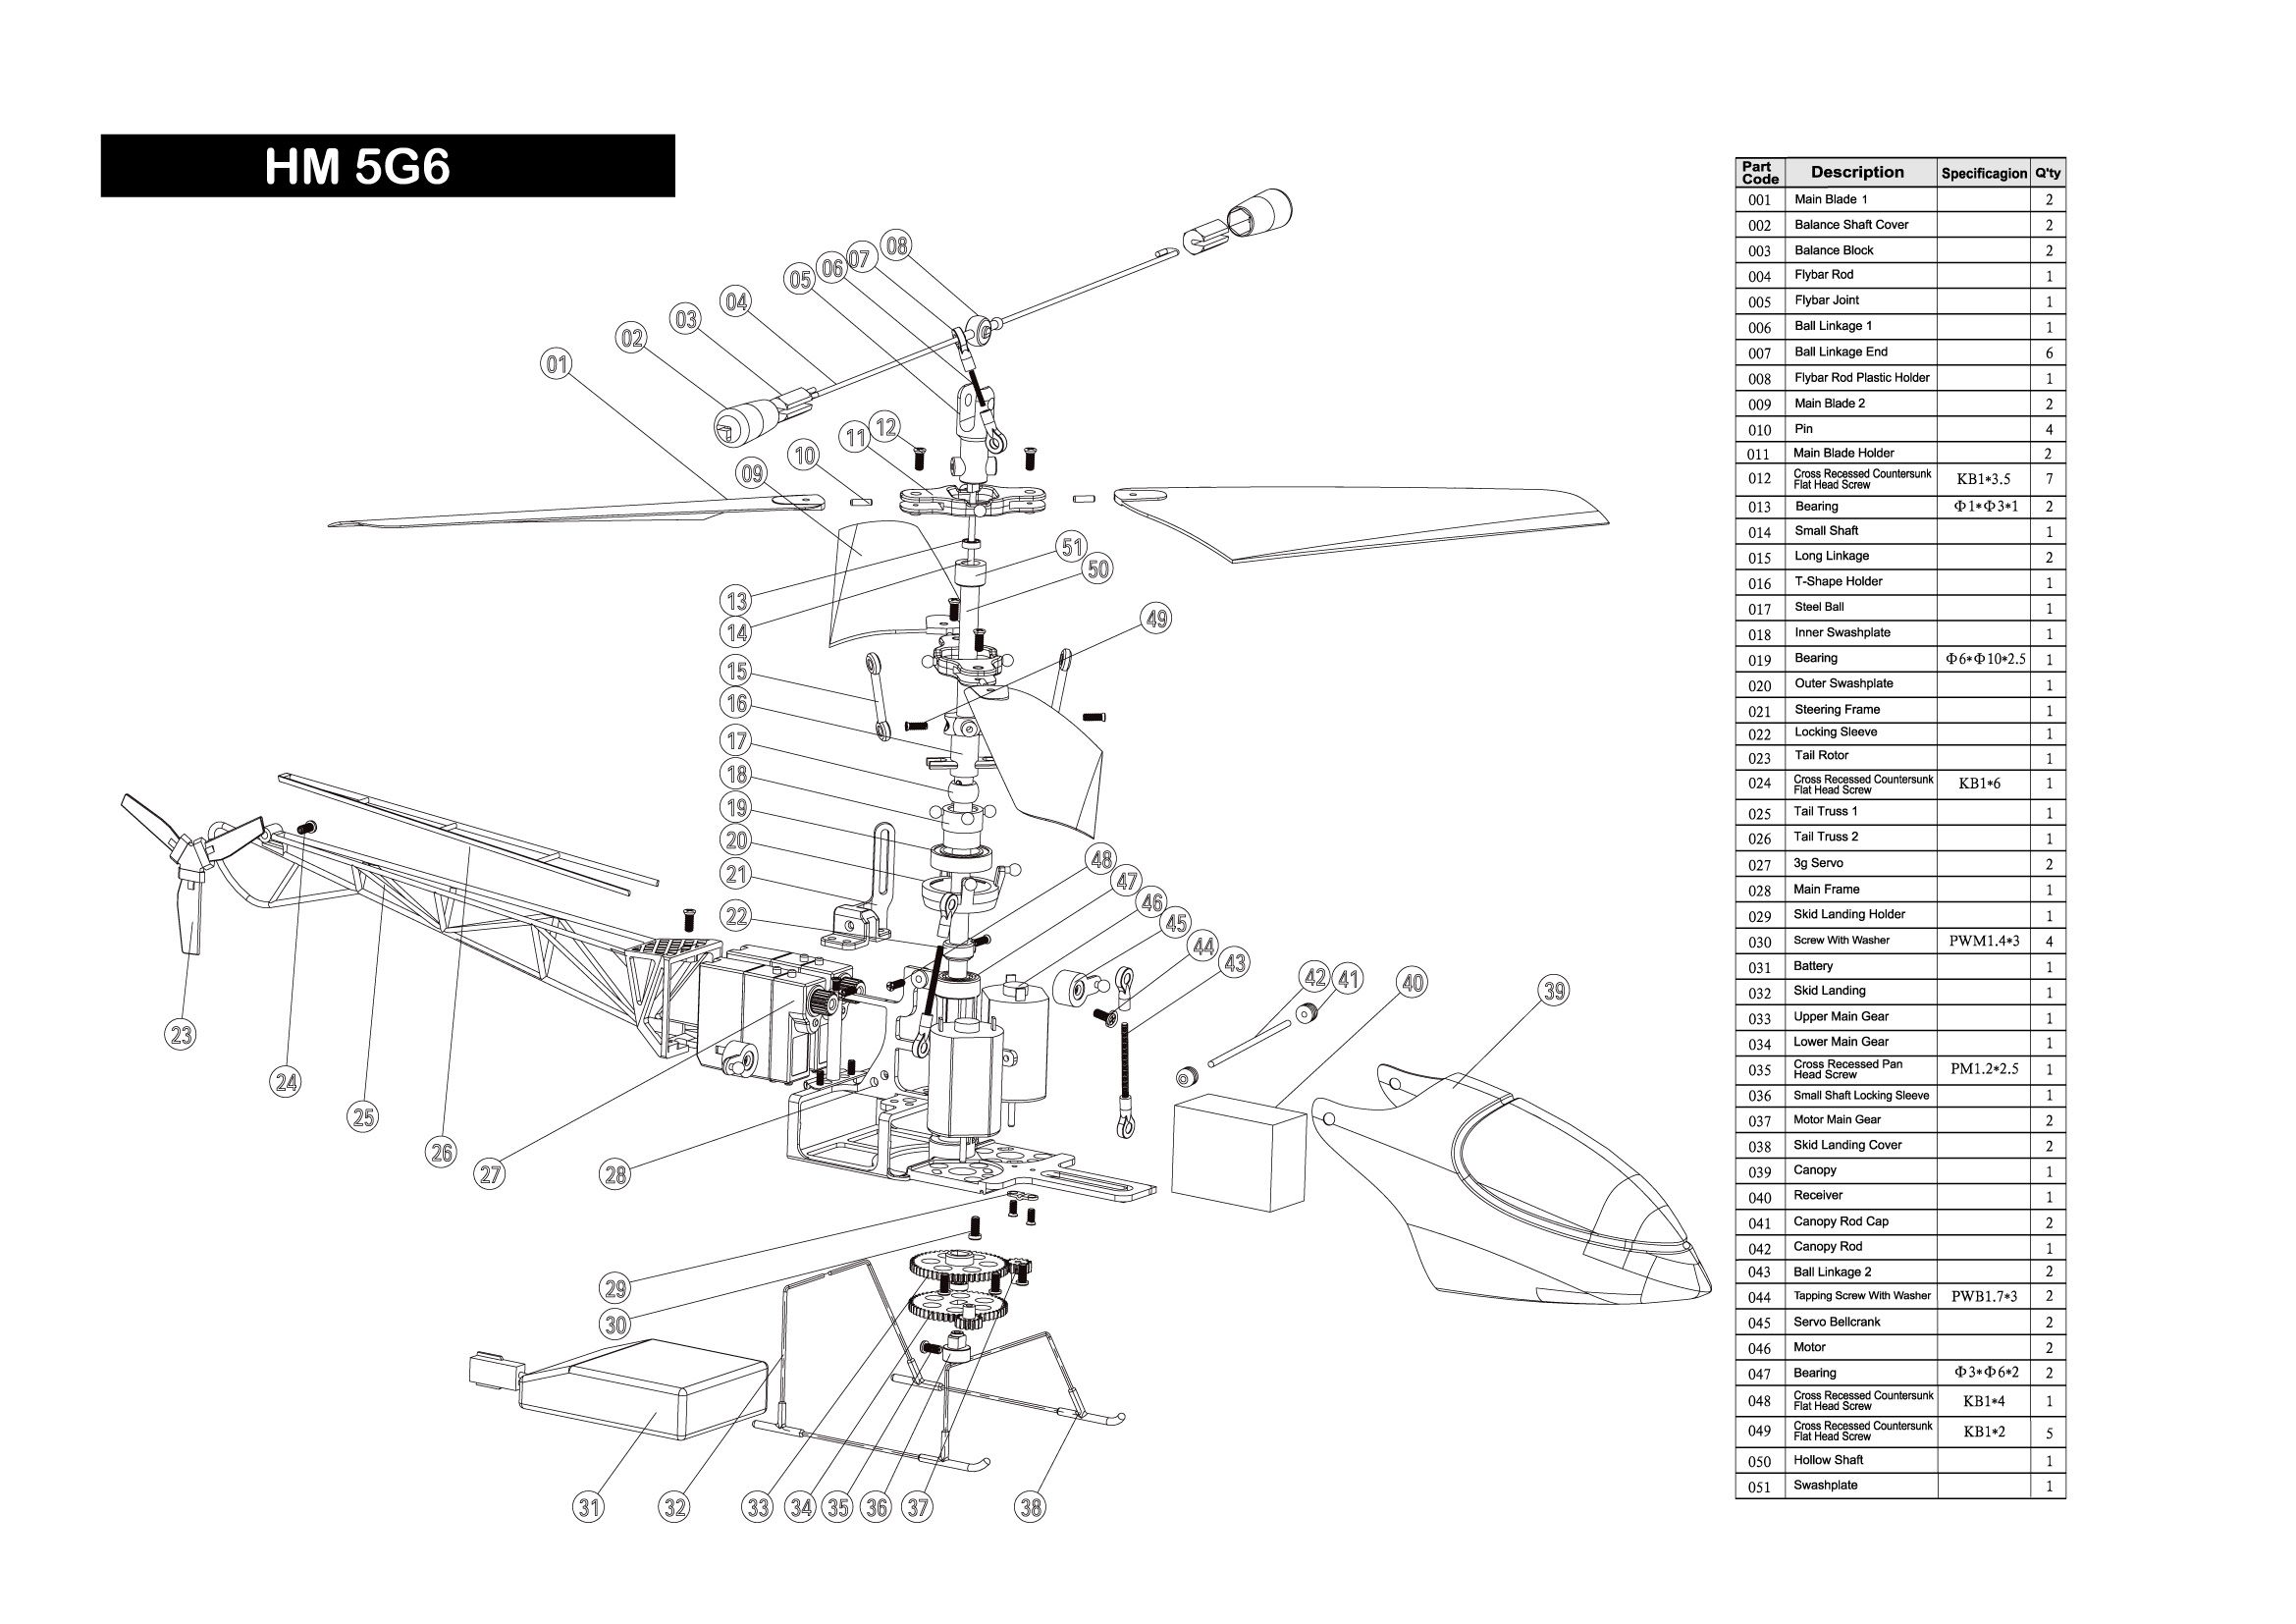 Rc Helicopter Circuit Diagram Three Way Wiring Sms Vipie De Walkera Hm 5g6 Exploded Parts List Quadcopters Rh Pinterest Com Pdf